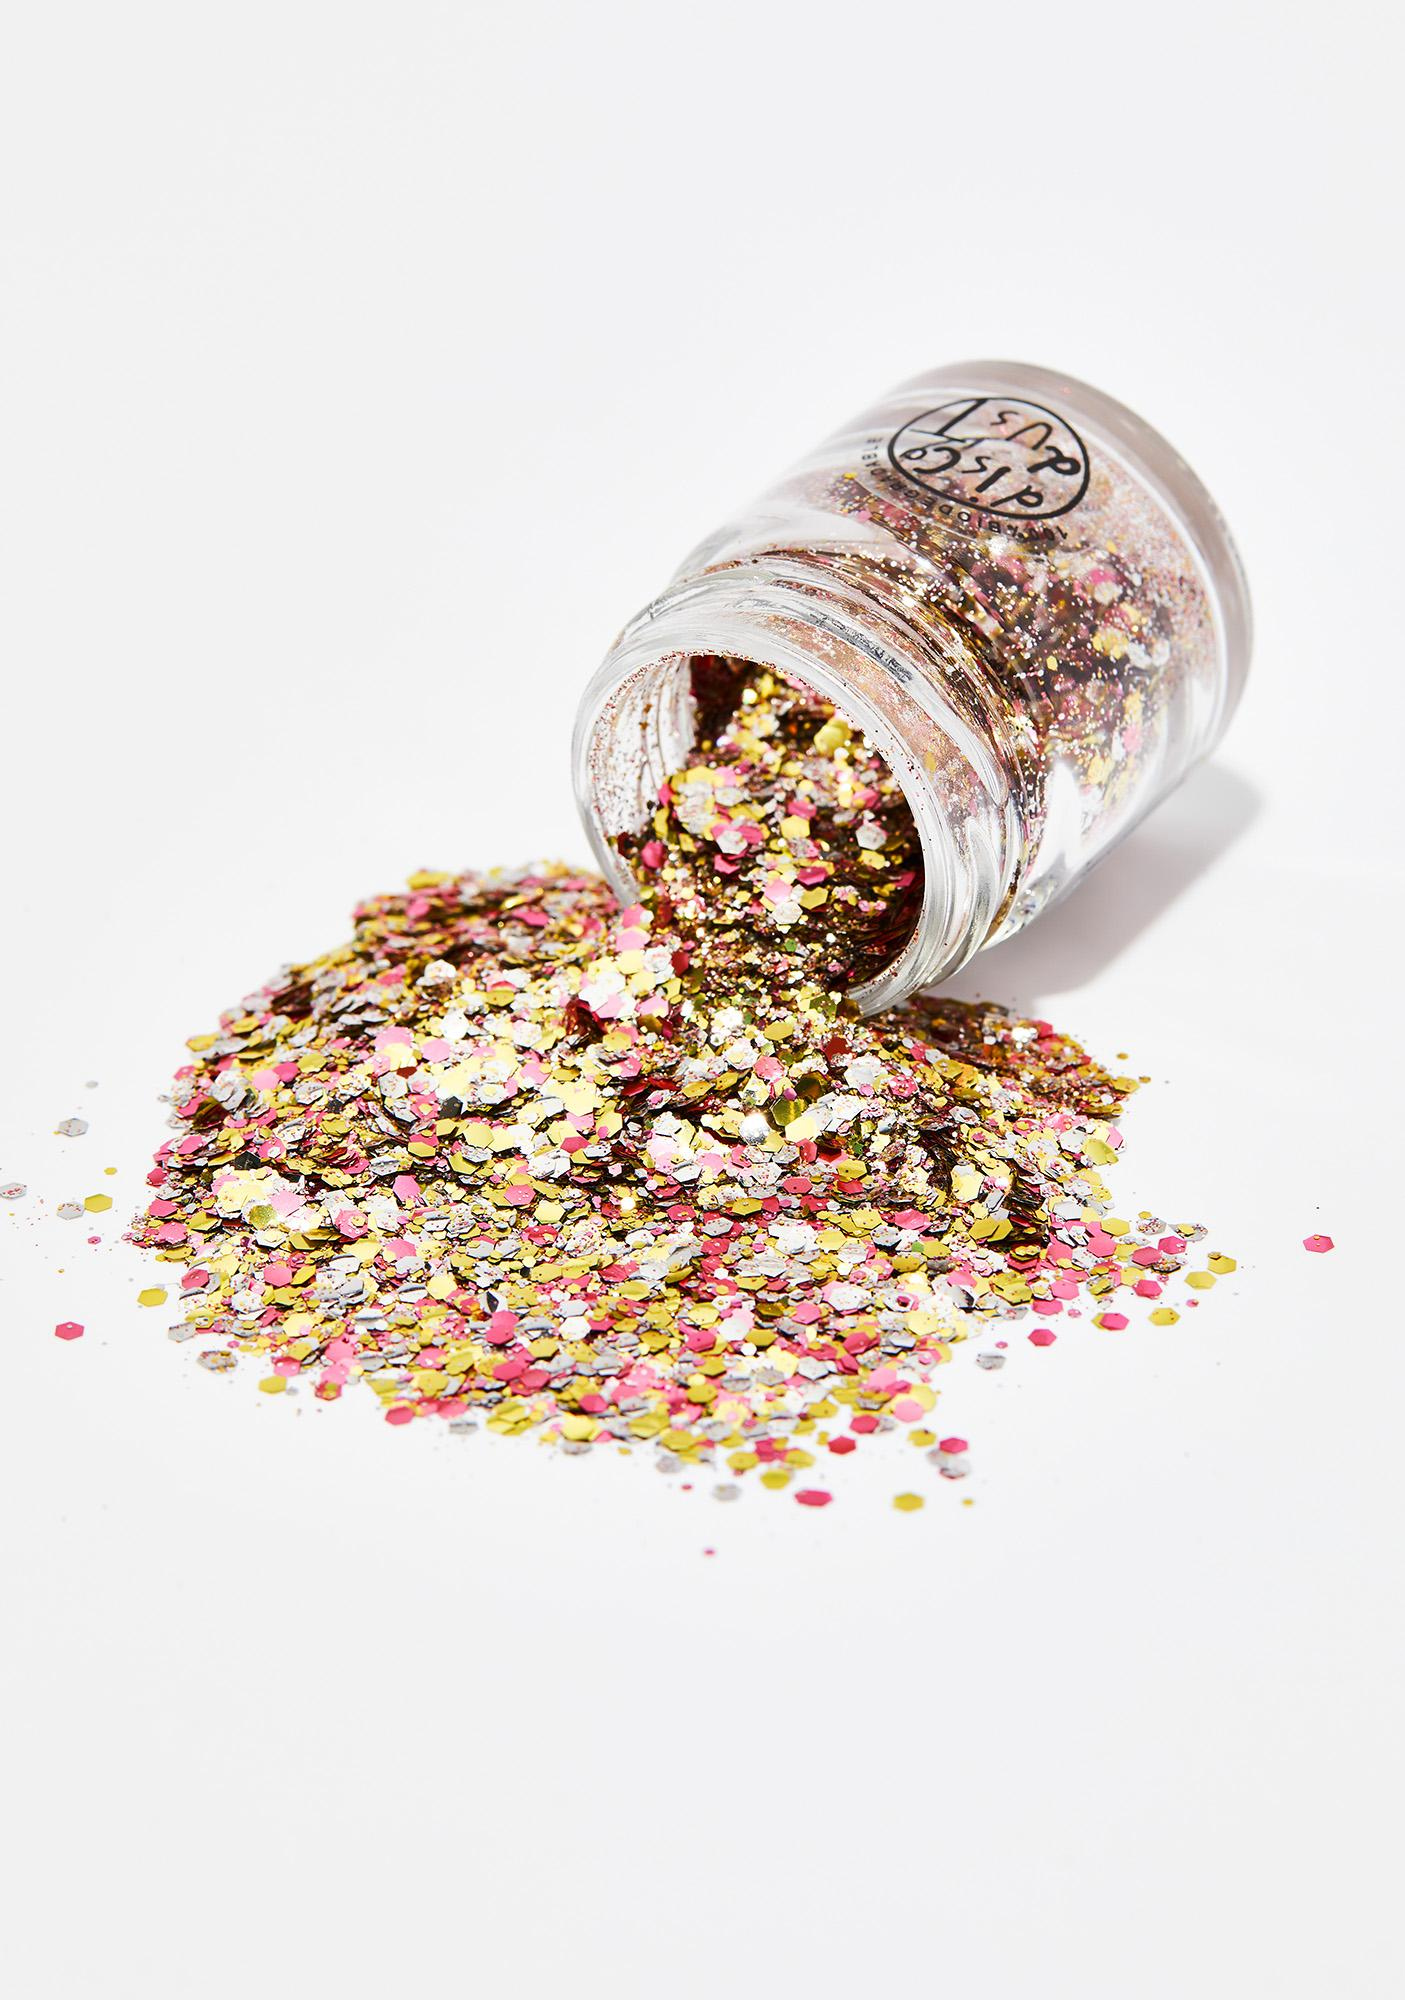 Disco Dust London Metallic Rose Extra Chunky Bio Glitter